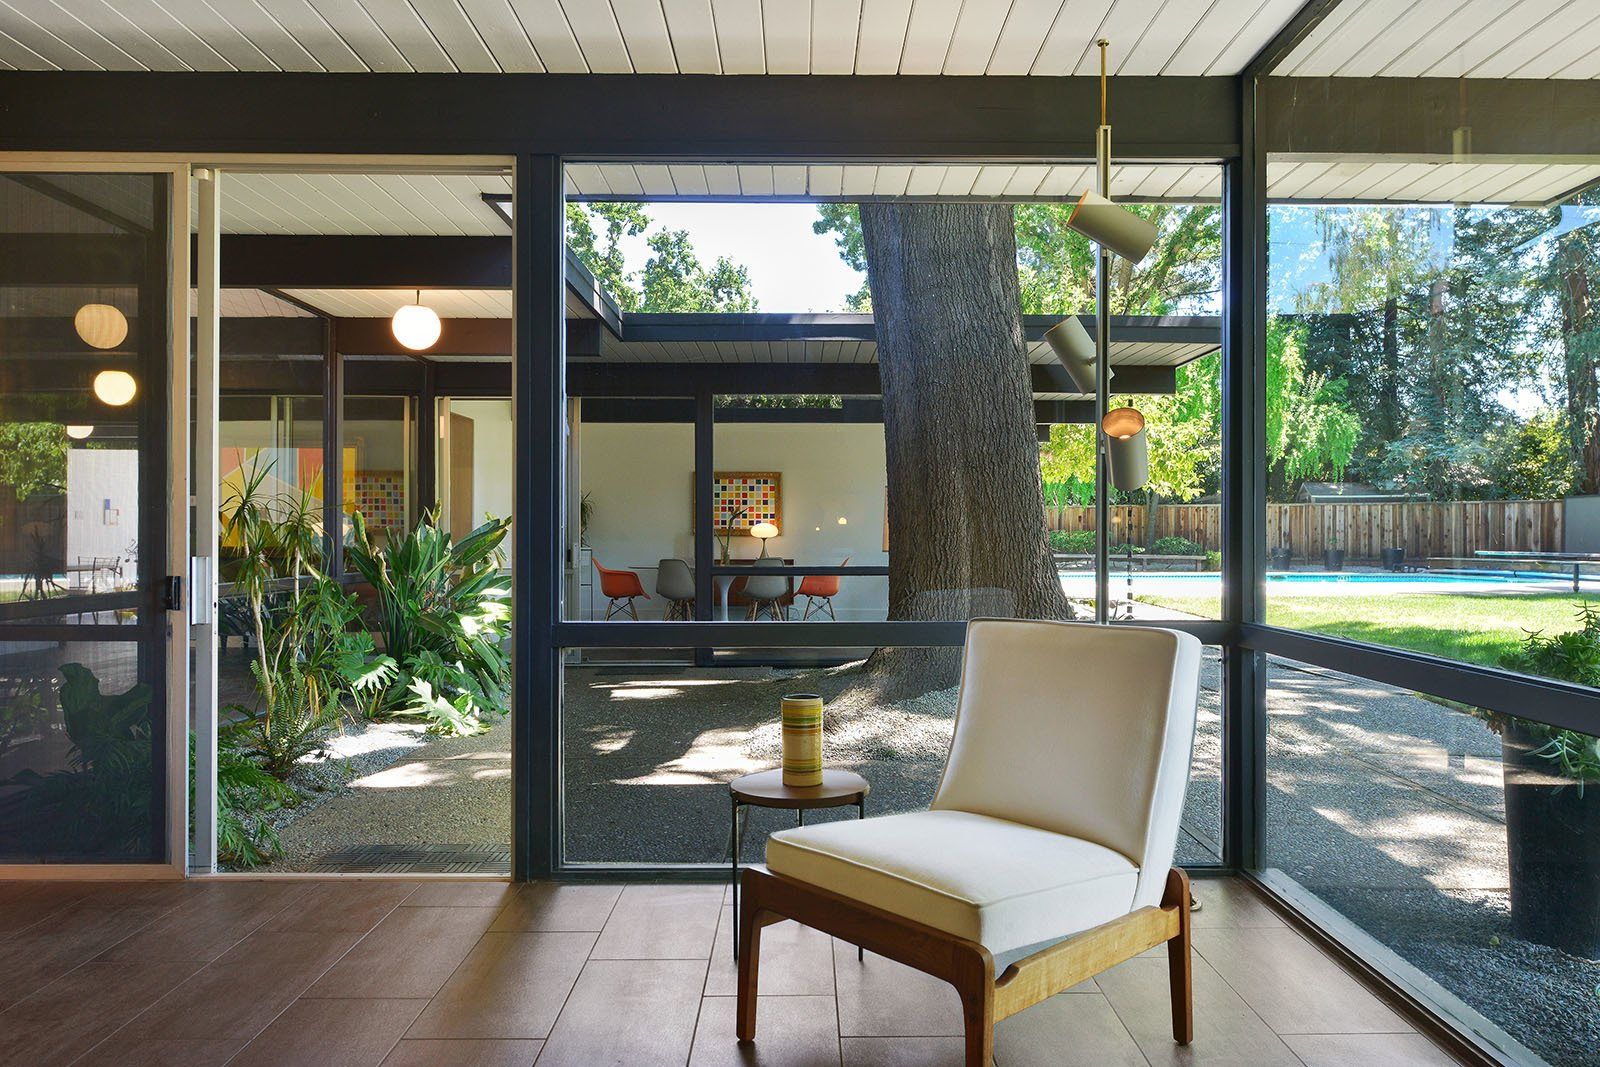 Photo 5 of 15 in An Enormous Bay Area Eichler Asks $1.45M